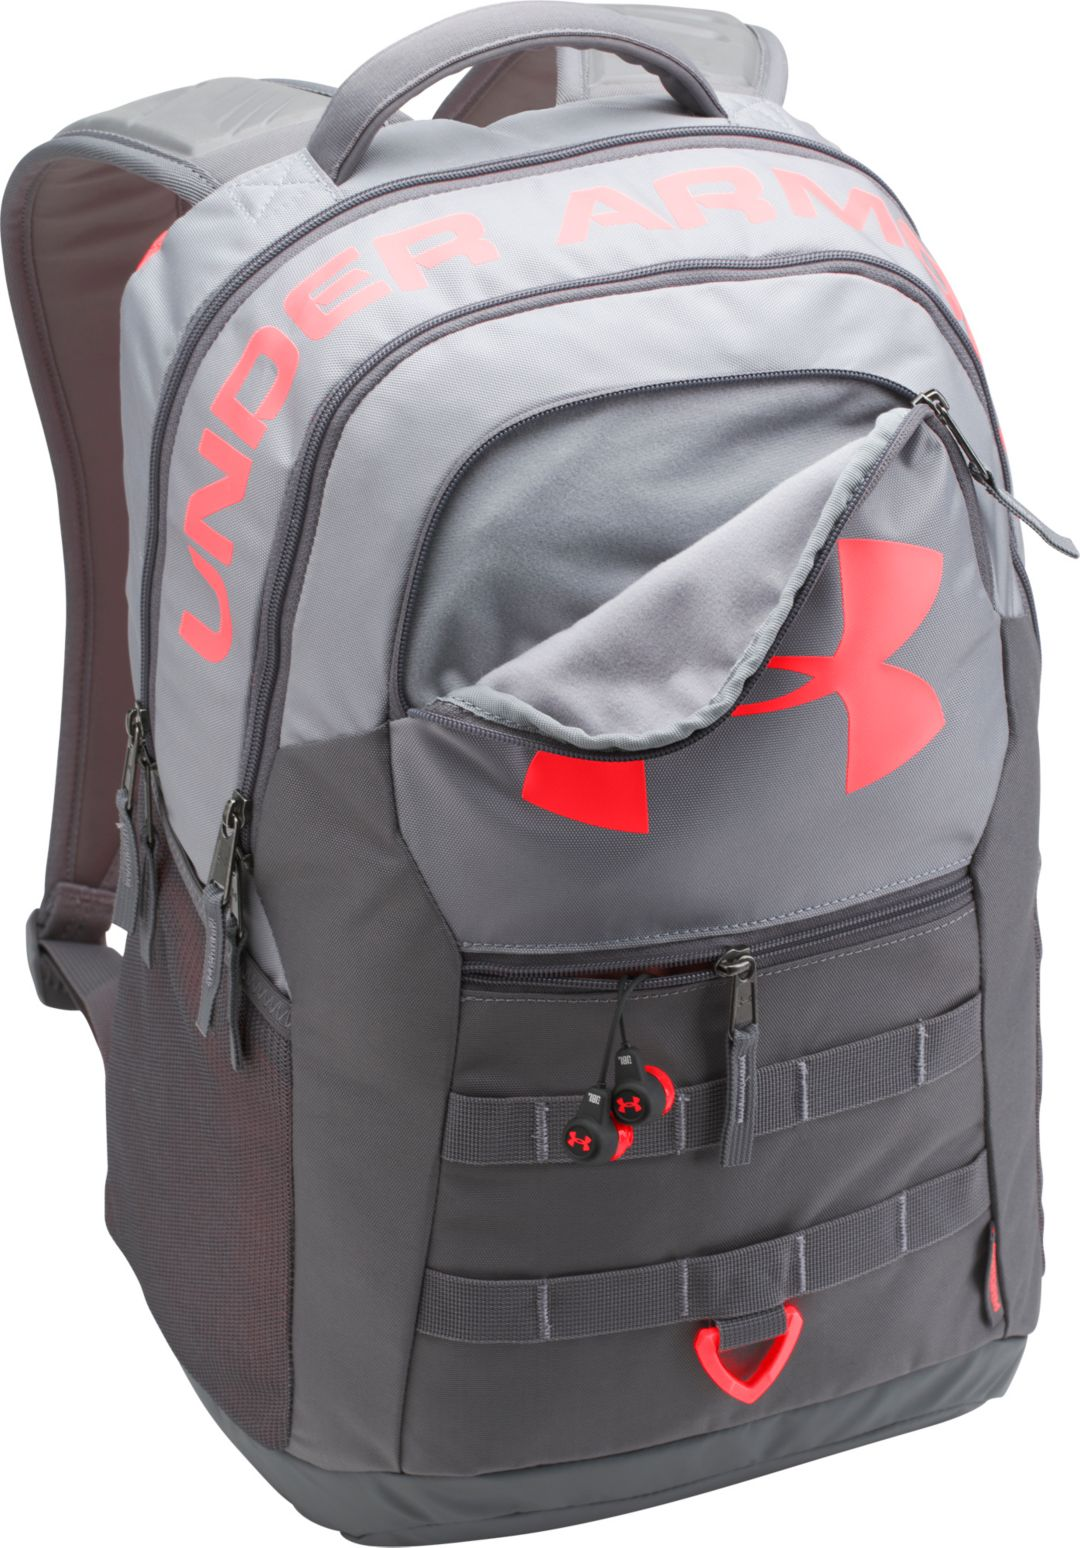 bf755ad80e Under Armour Big Logo 5.0 Backpack | DICK'S Sporting Goods